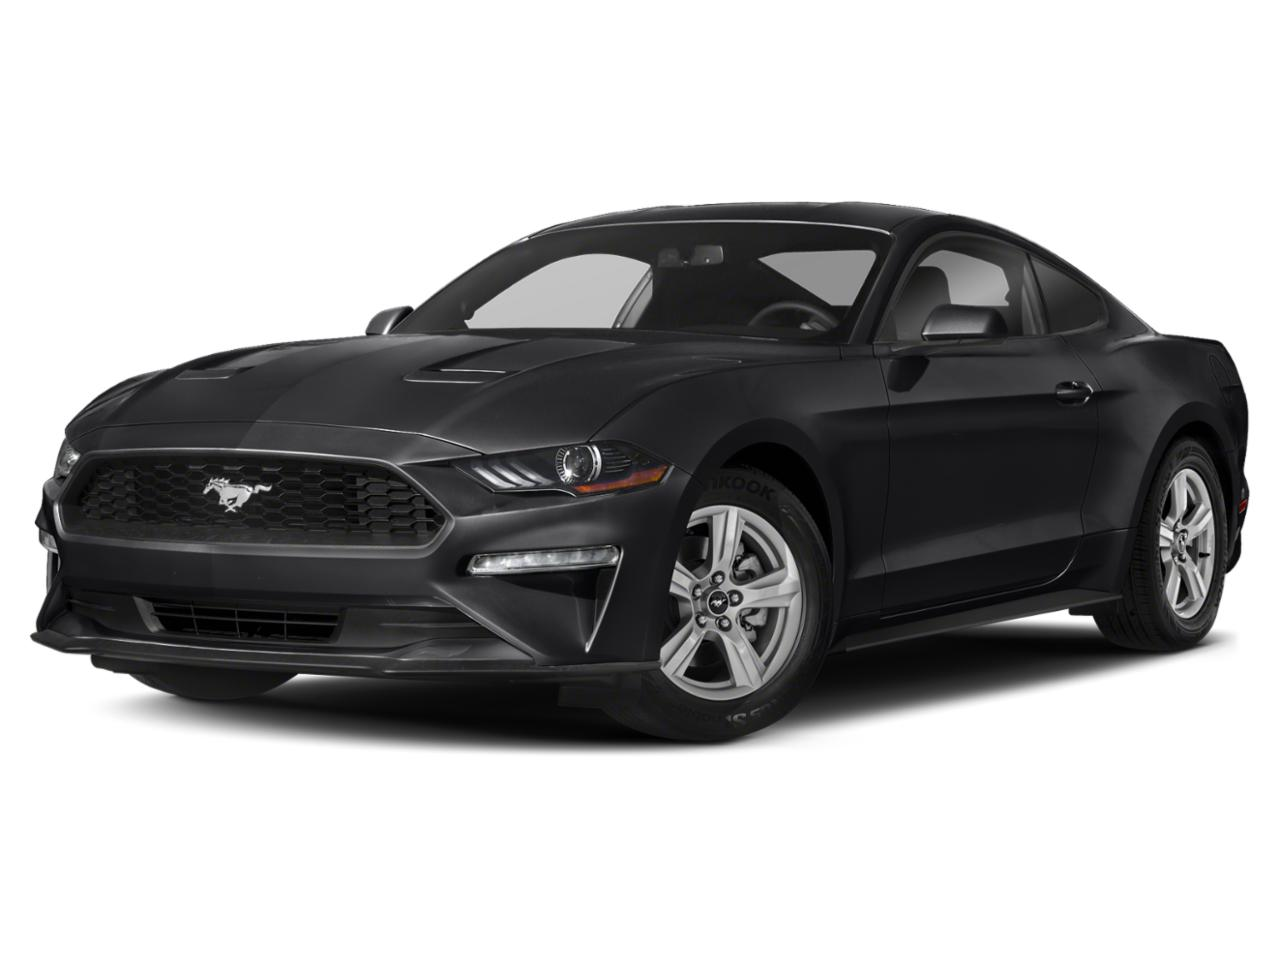 Shadow Black 2020 Ford Mustang GT 2dr Car Winston-Salem NC